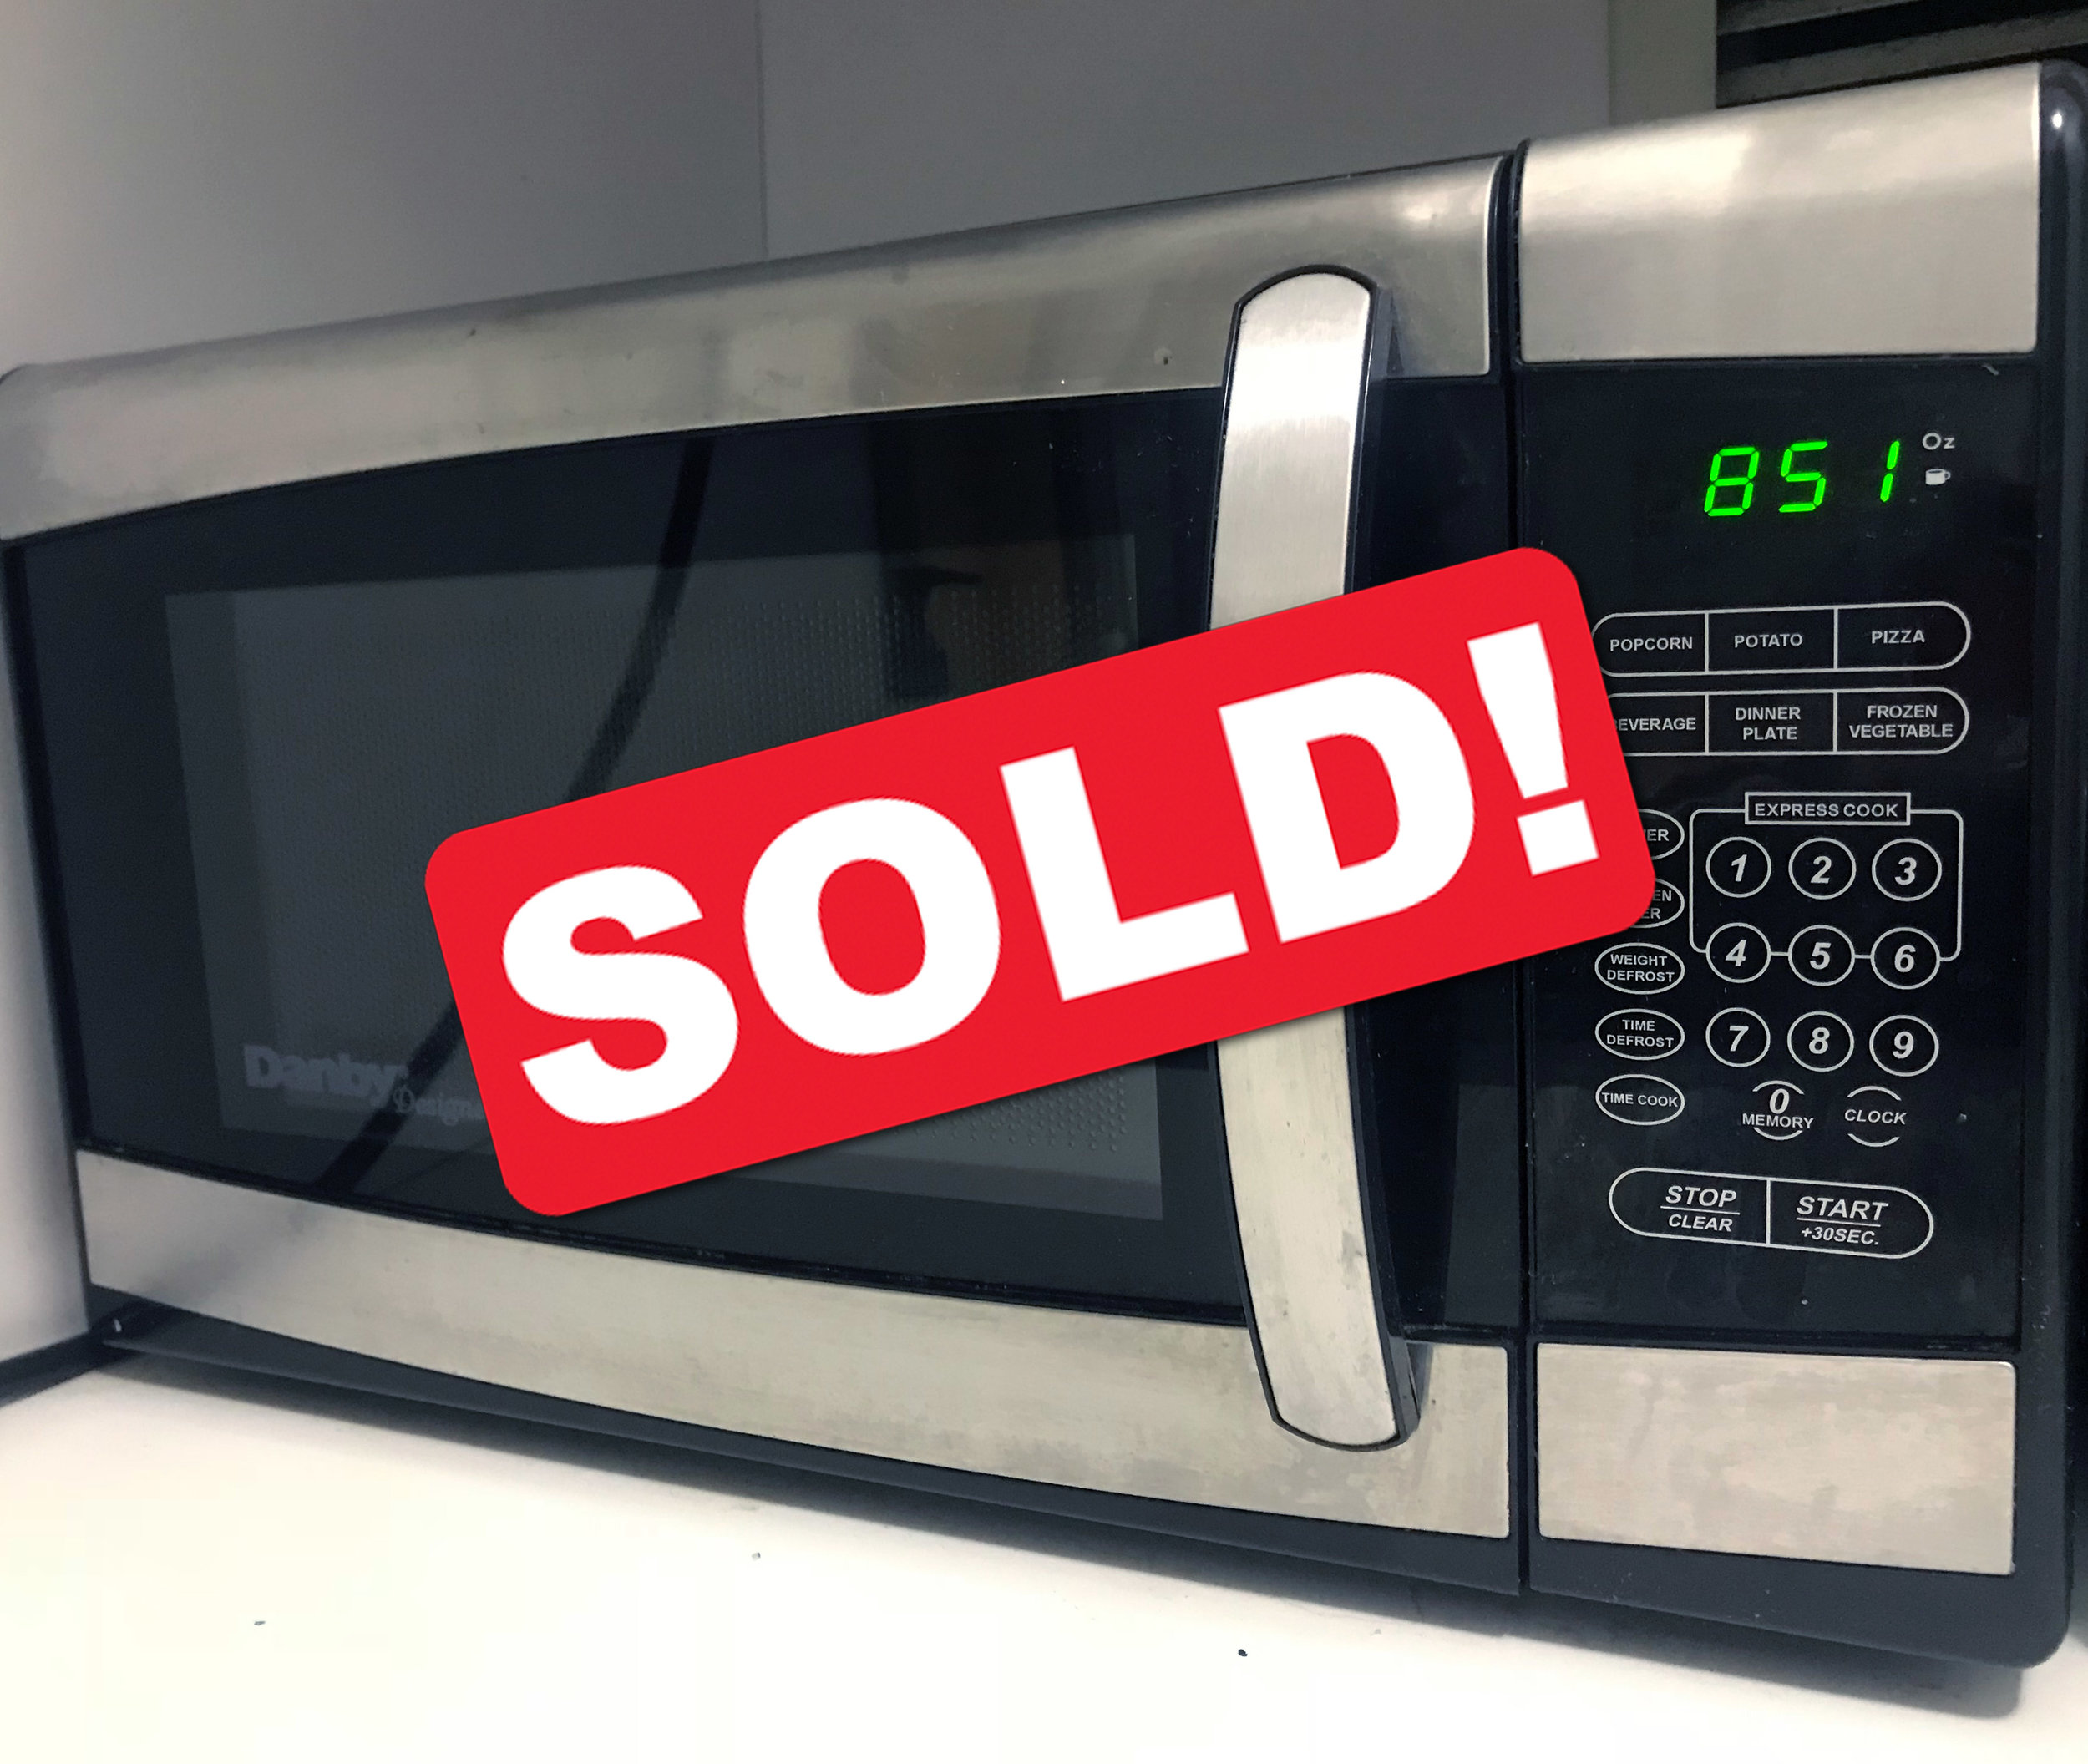 $20  Countertop Microwave  Black and stainless steel Danby Designer 0.7 cu.ft. microwave with 700 watts of cooking power. Comes with 10 power levels. Dimensions 14 x 17.3 x 10.1 inches.